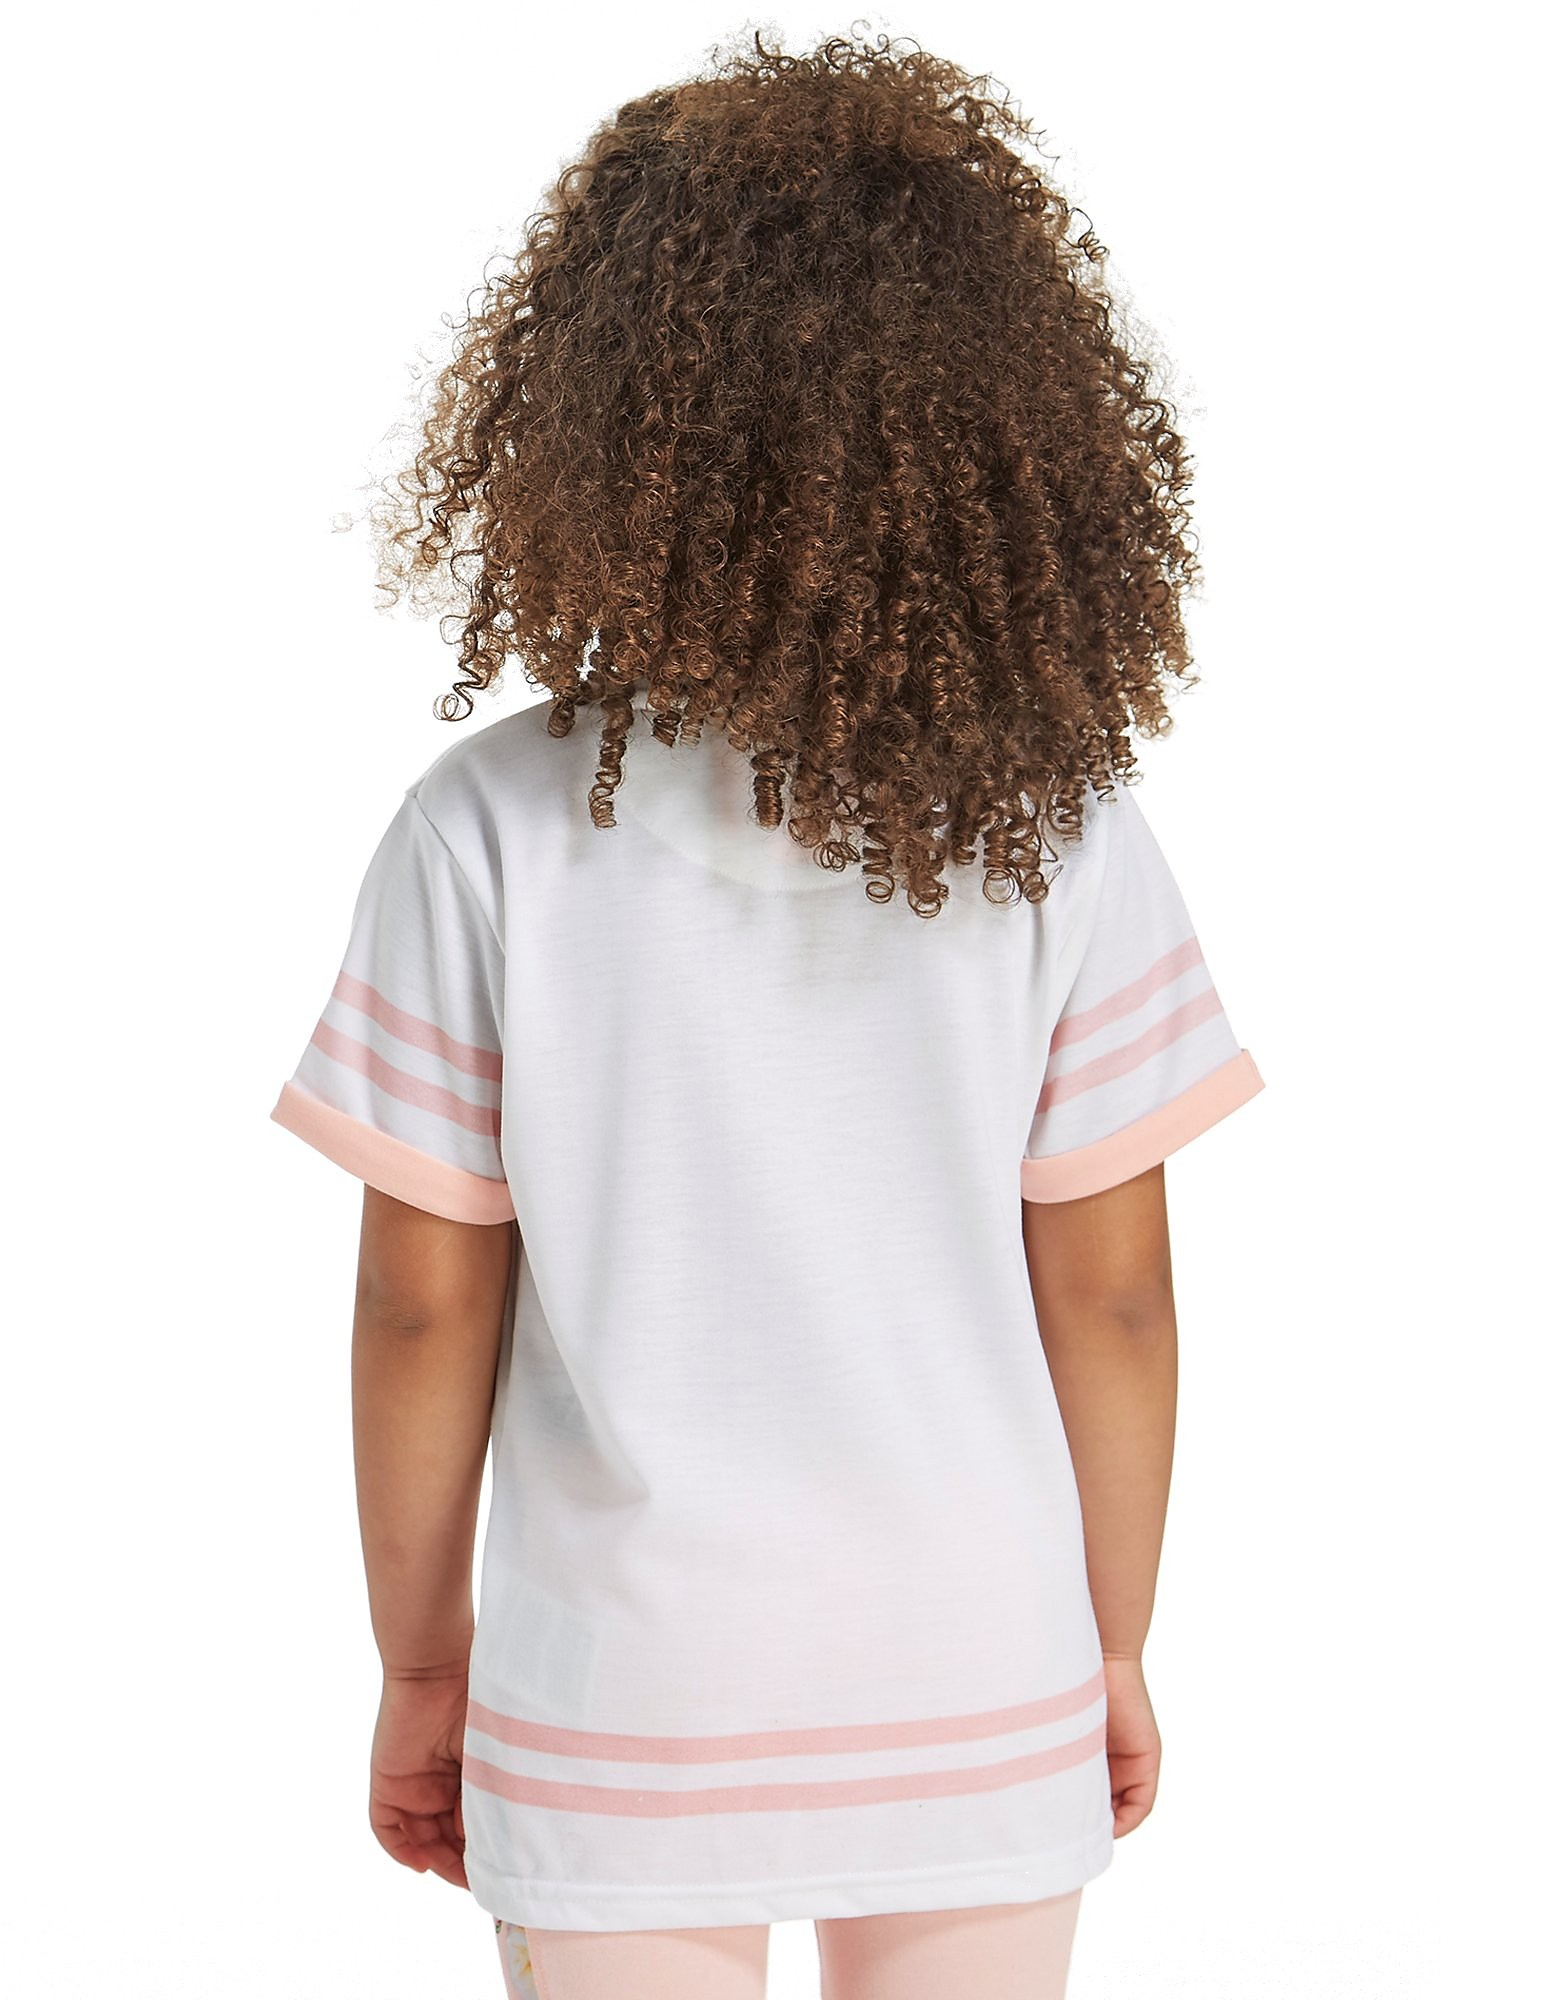 McKenzie Girls' Cleo T-Shirt Children